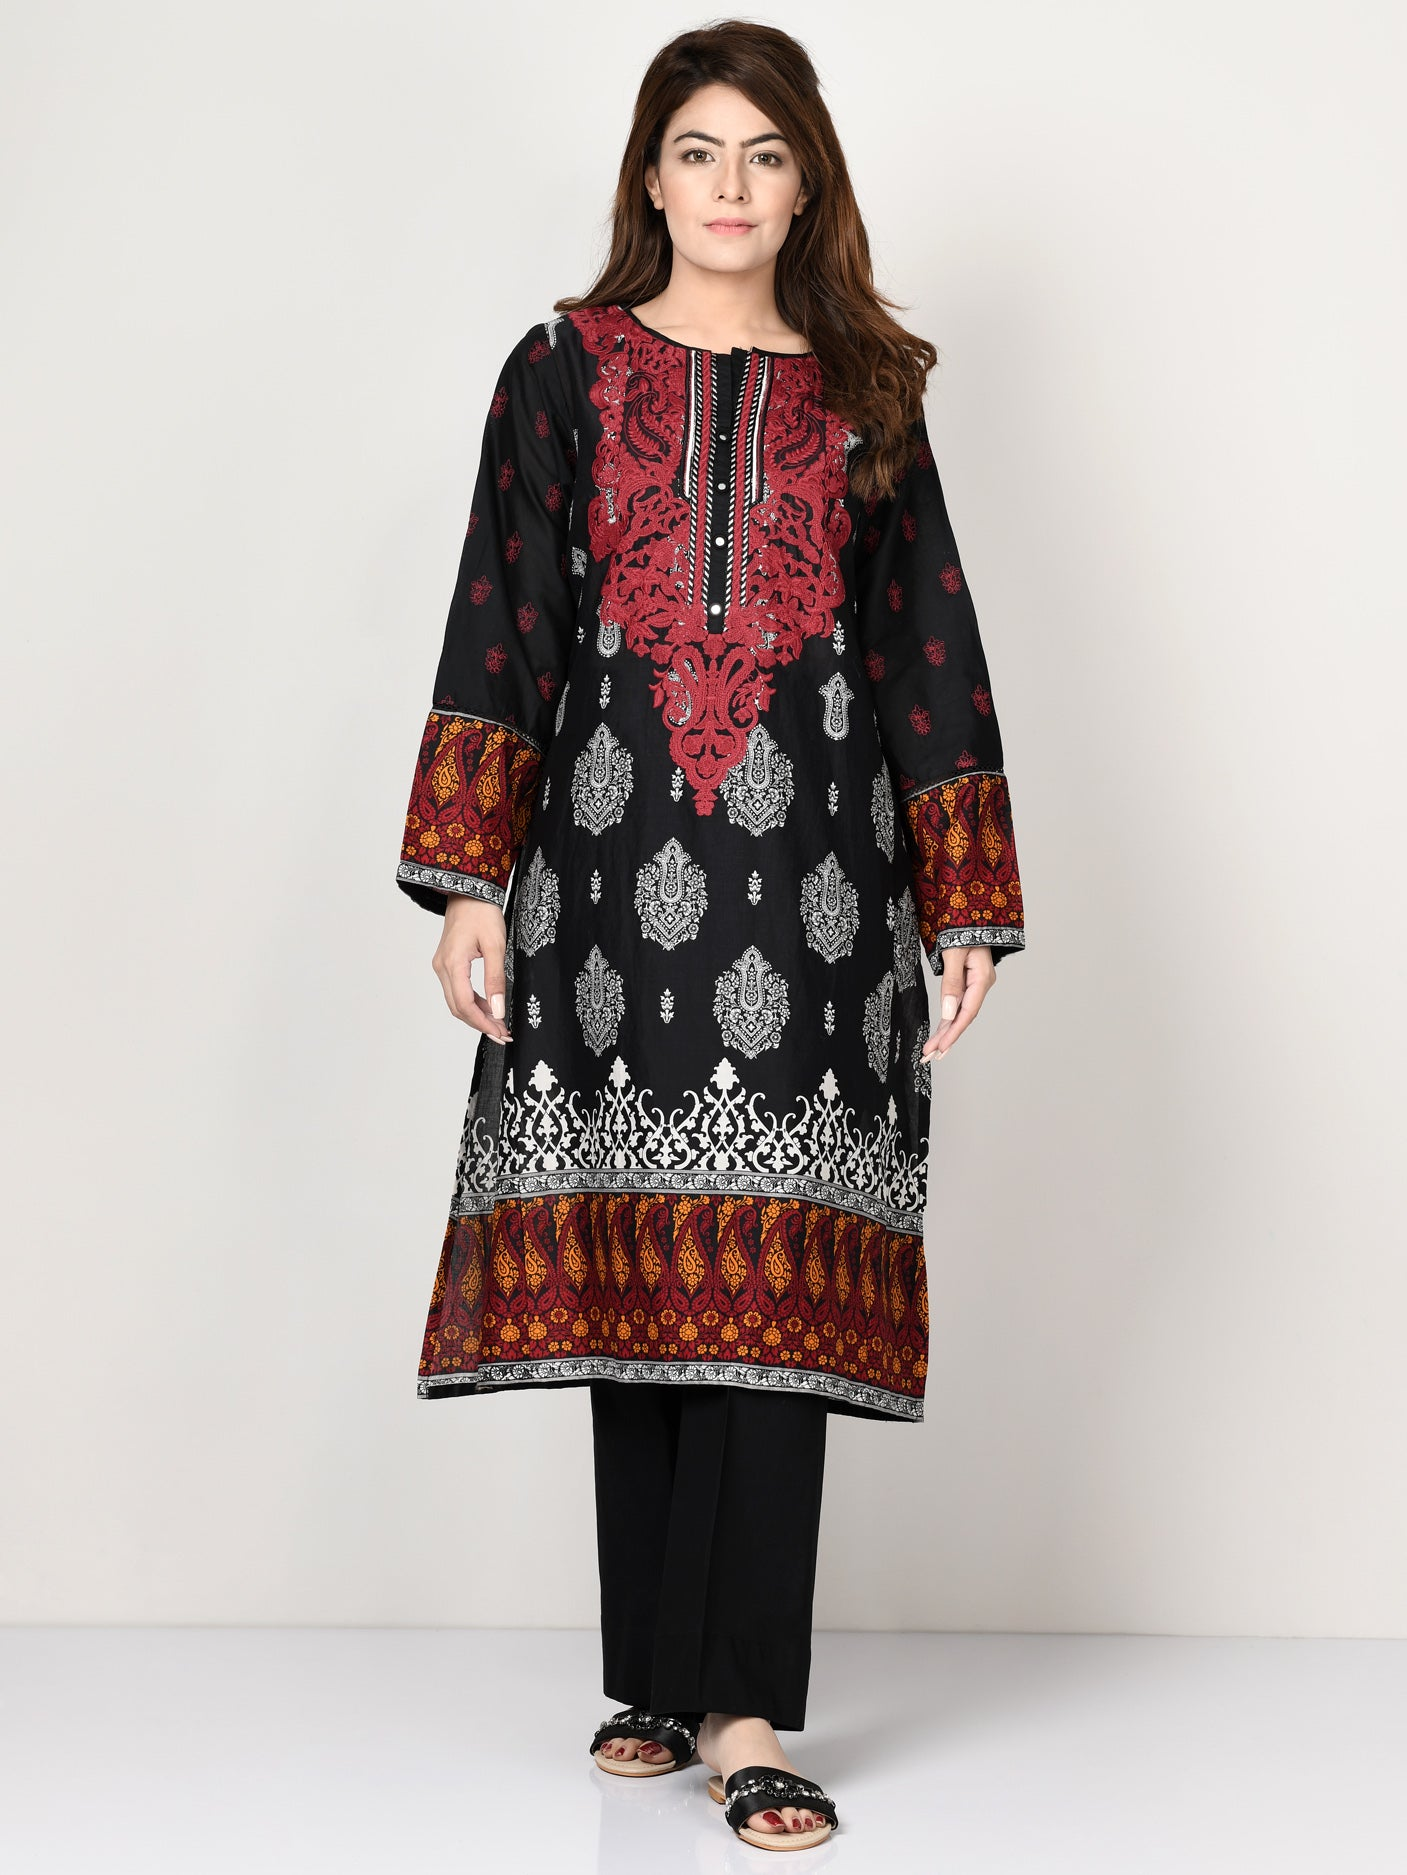 Limelight Online Embroidered Stone Shirt P0147-GRN